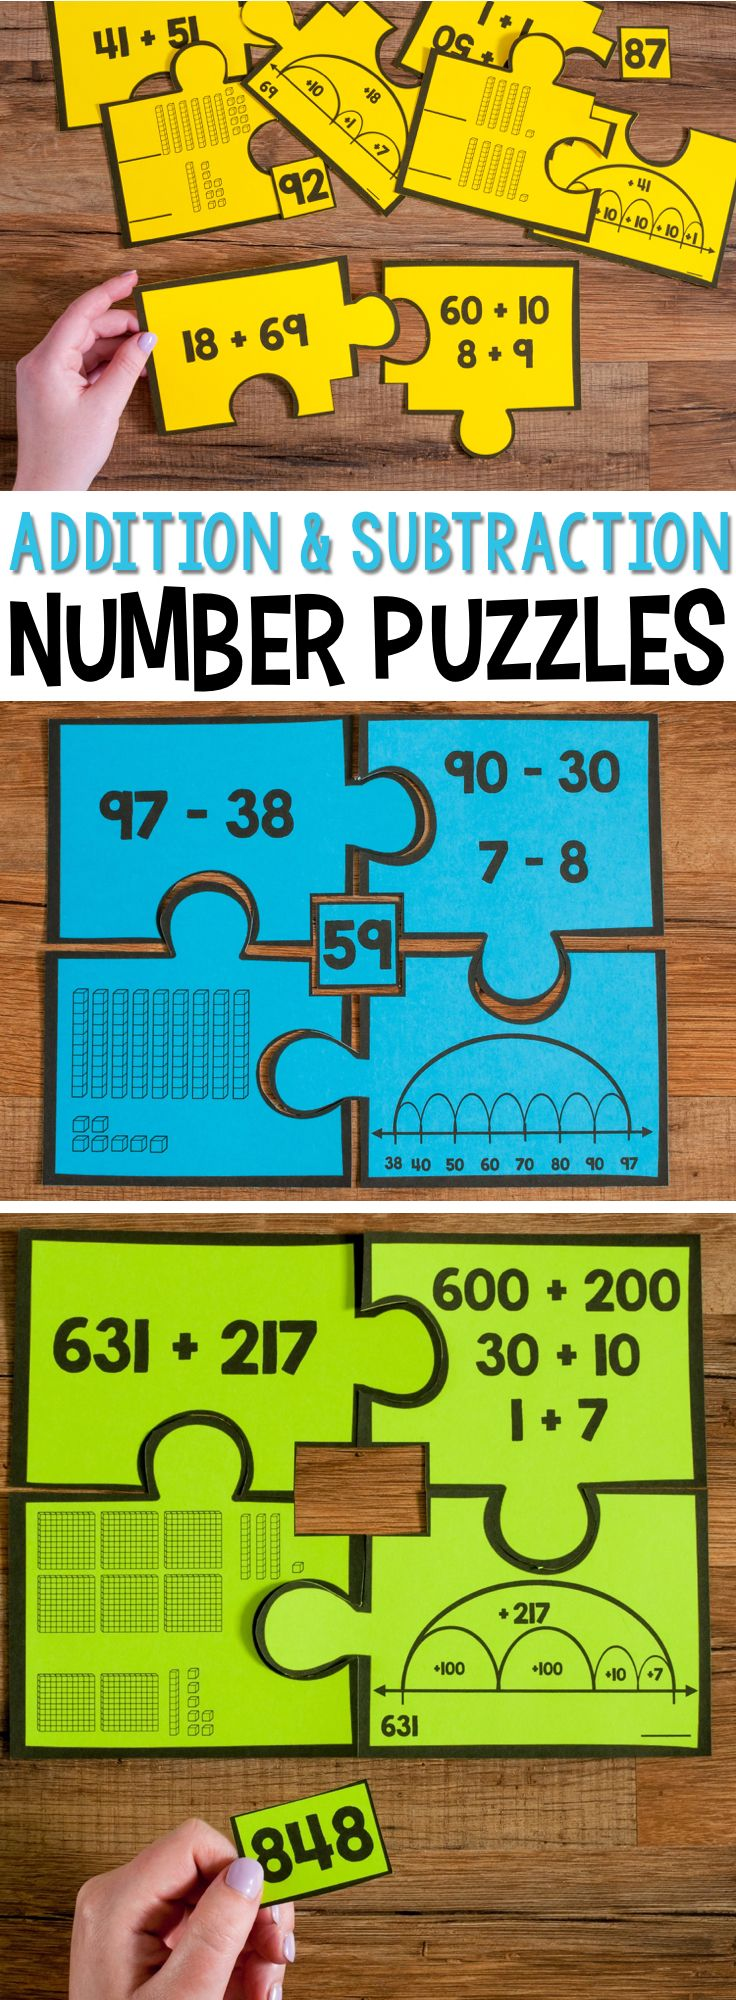 235 best third grade images on Pinterest | School projects ...